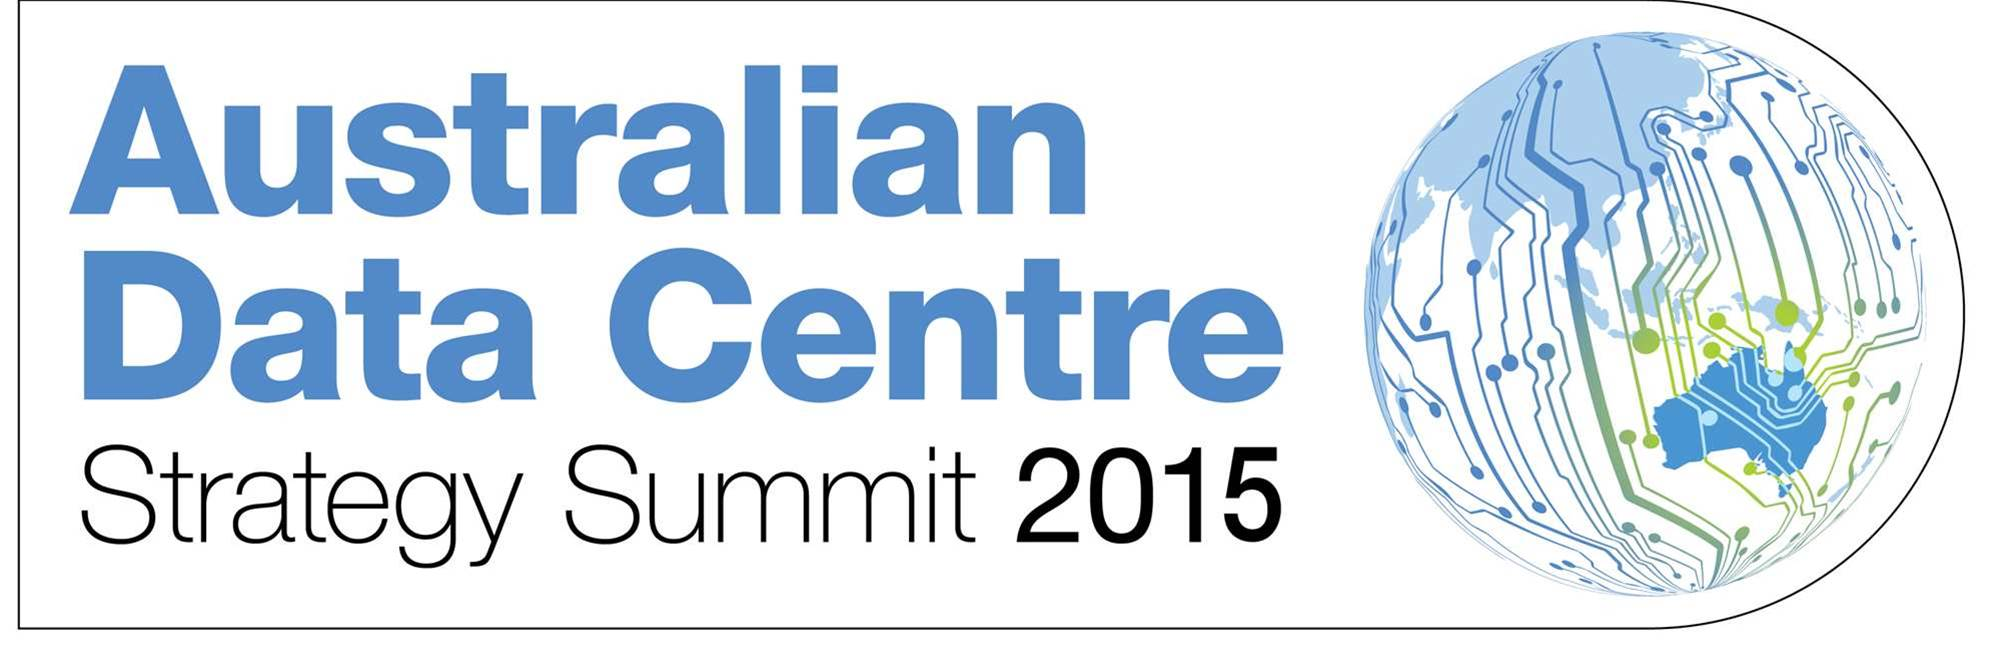 Australian Data Centre Strategy Summit